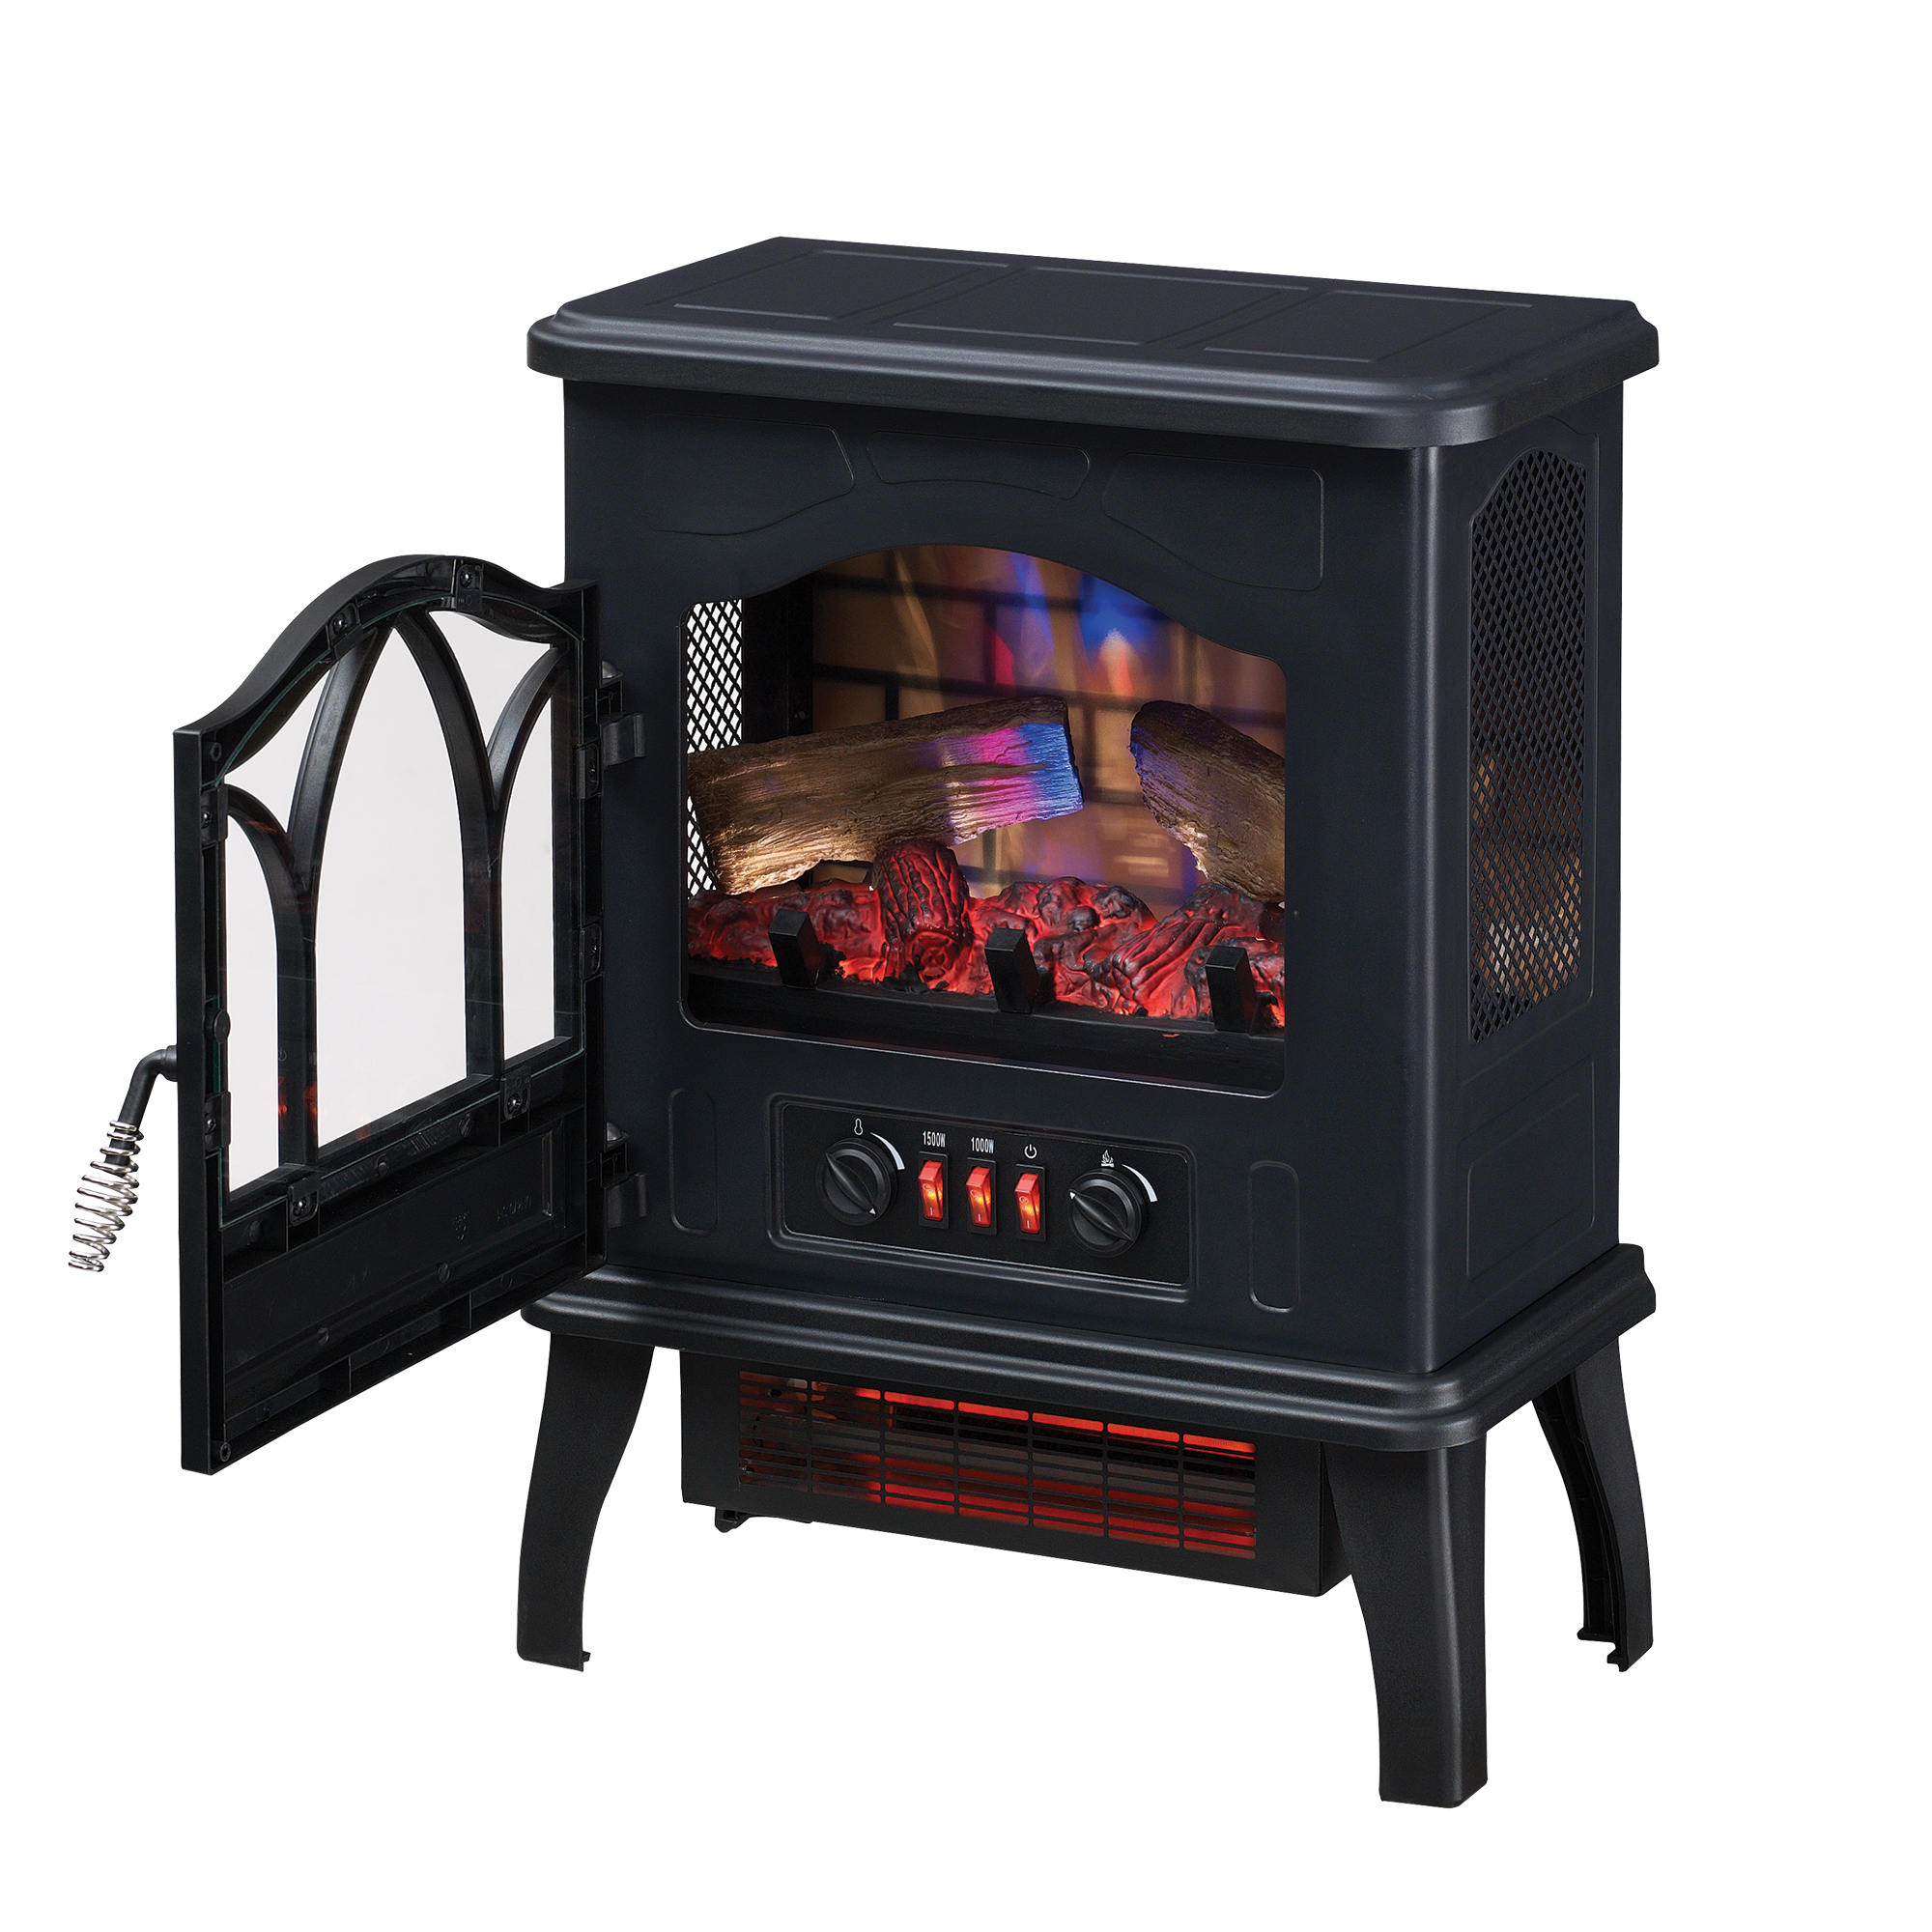 Stove with water heater with fireplace: reviews 53